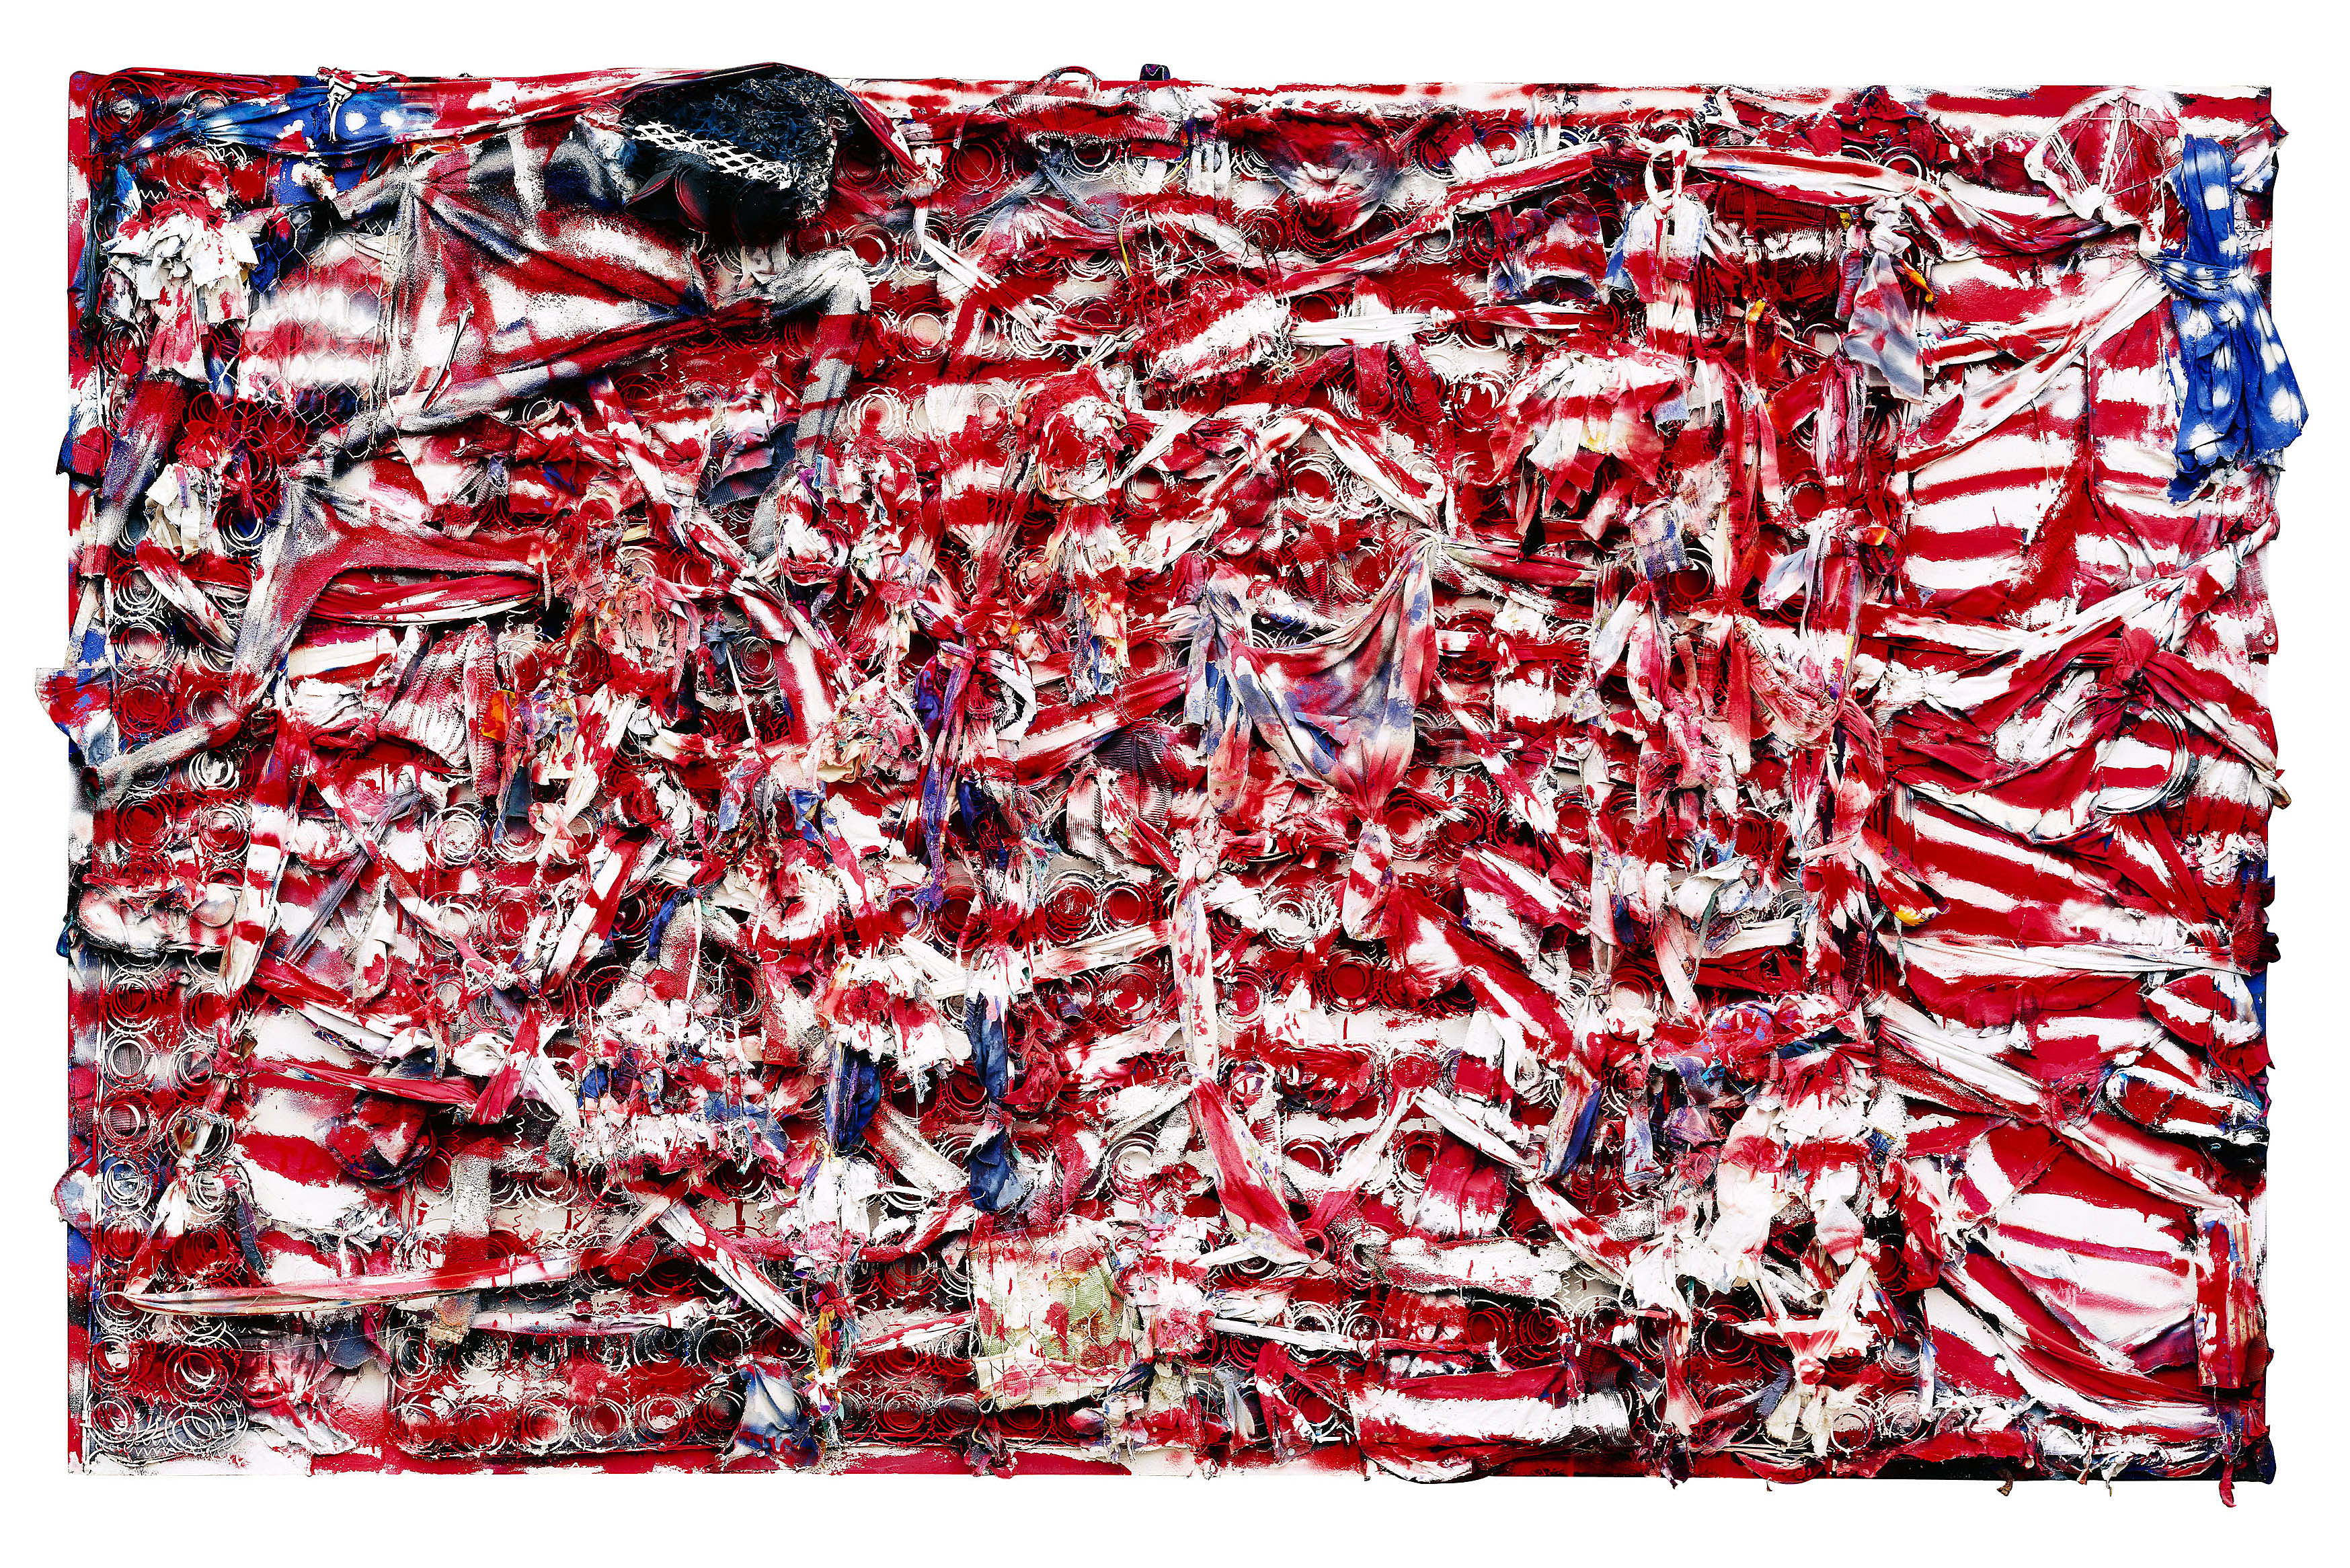 """Don't Matter How Raggly The Flag, It Still Got To Tie Us Together,"" 2003. © Thornton Dial, image by Stephen Pitkin/Pitkin Studio. Collection of the Indianapolis Museum of Art"